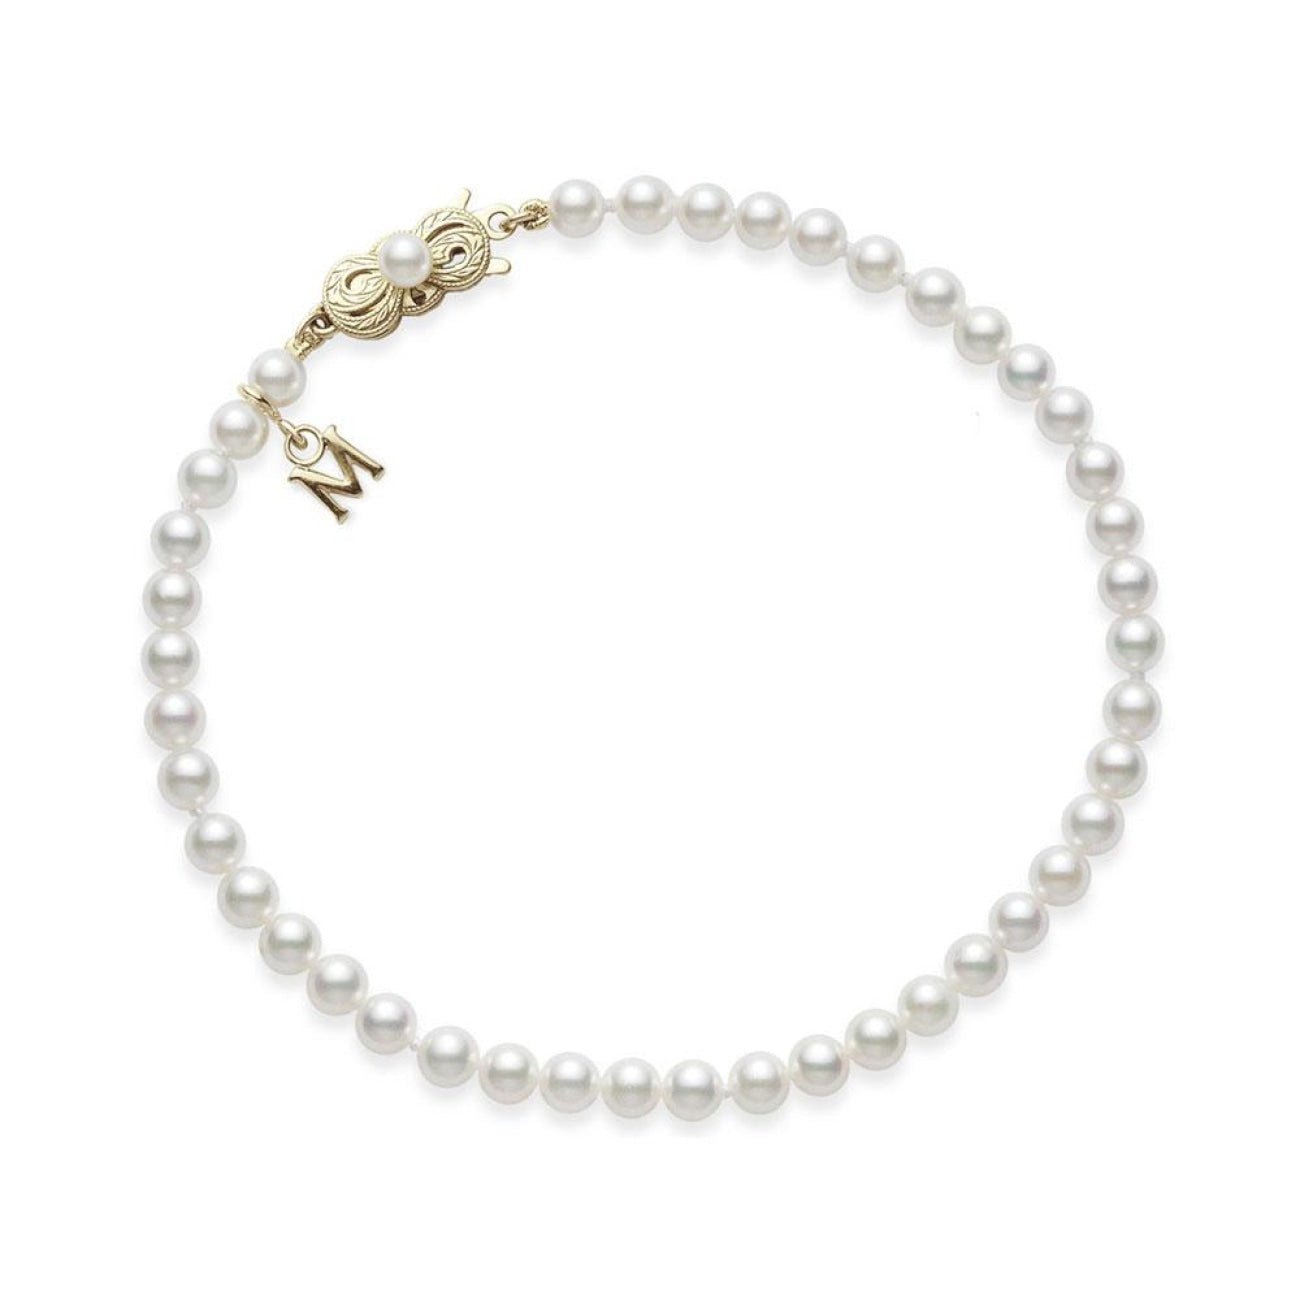 Mikimoto Jewelry - Mikimoto 7.5x7mm Akoya Cultured Pearl Bracelet | Manfredi Jewels